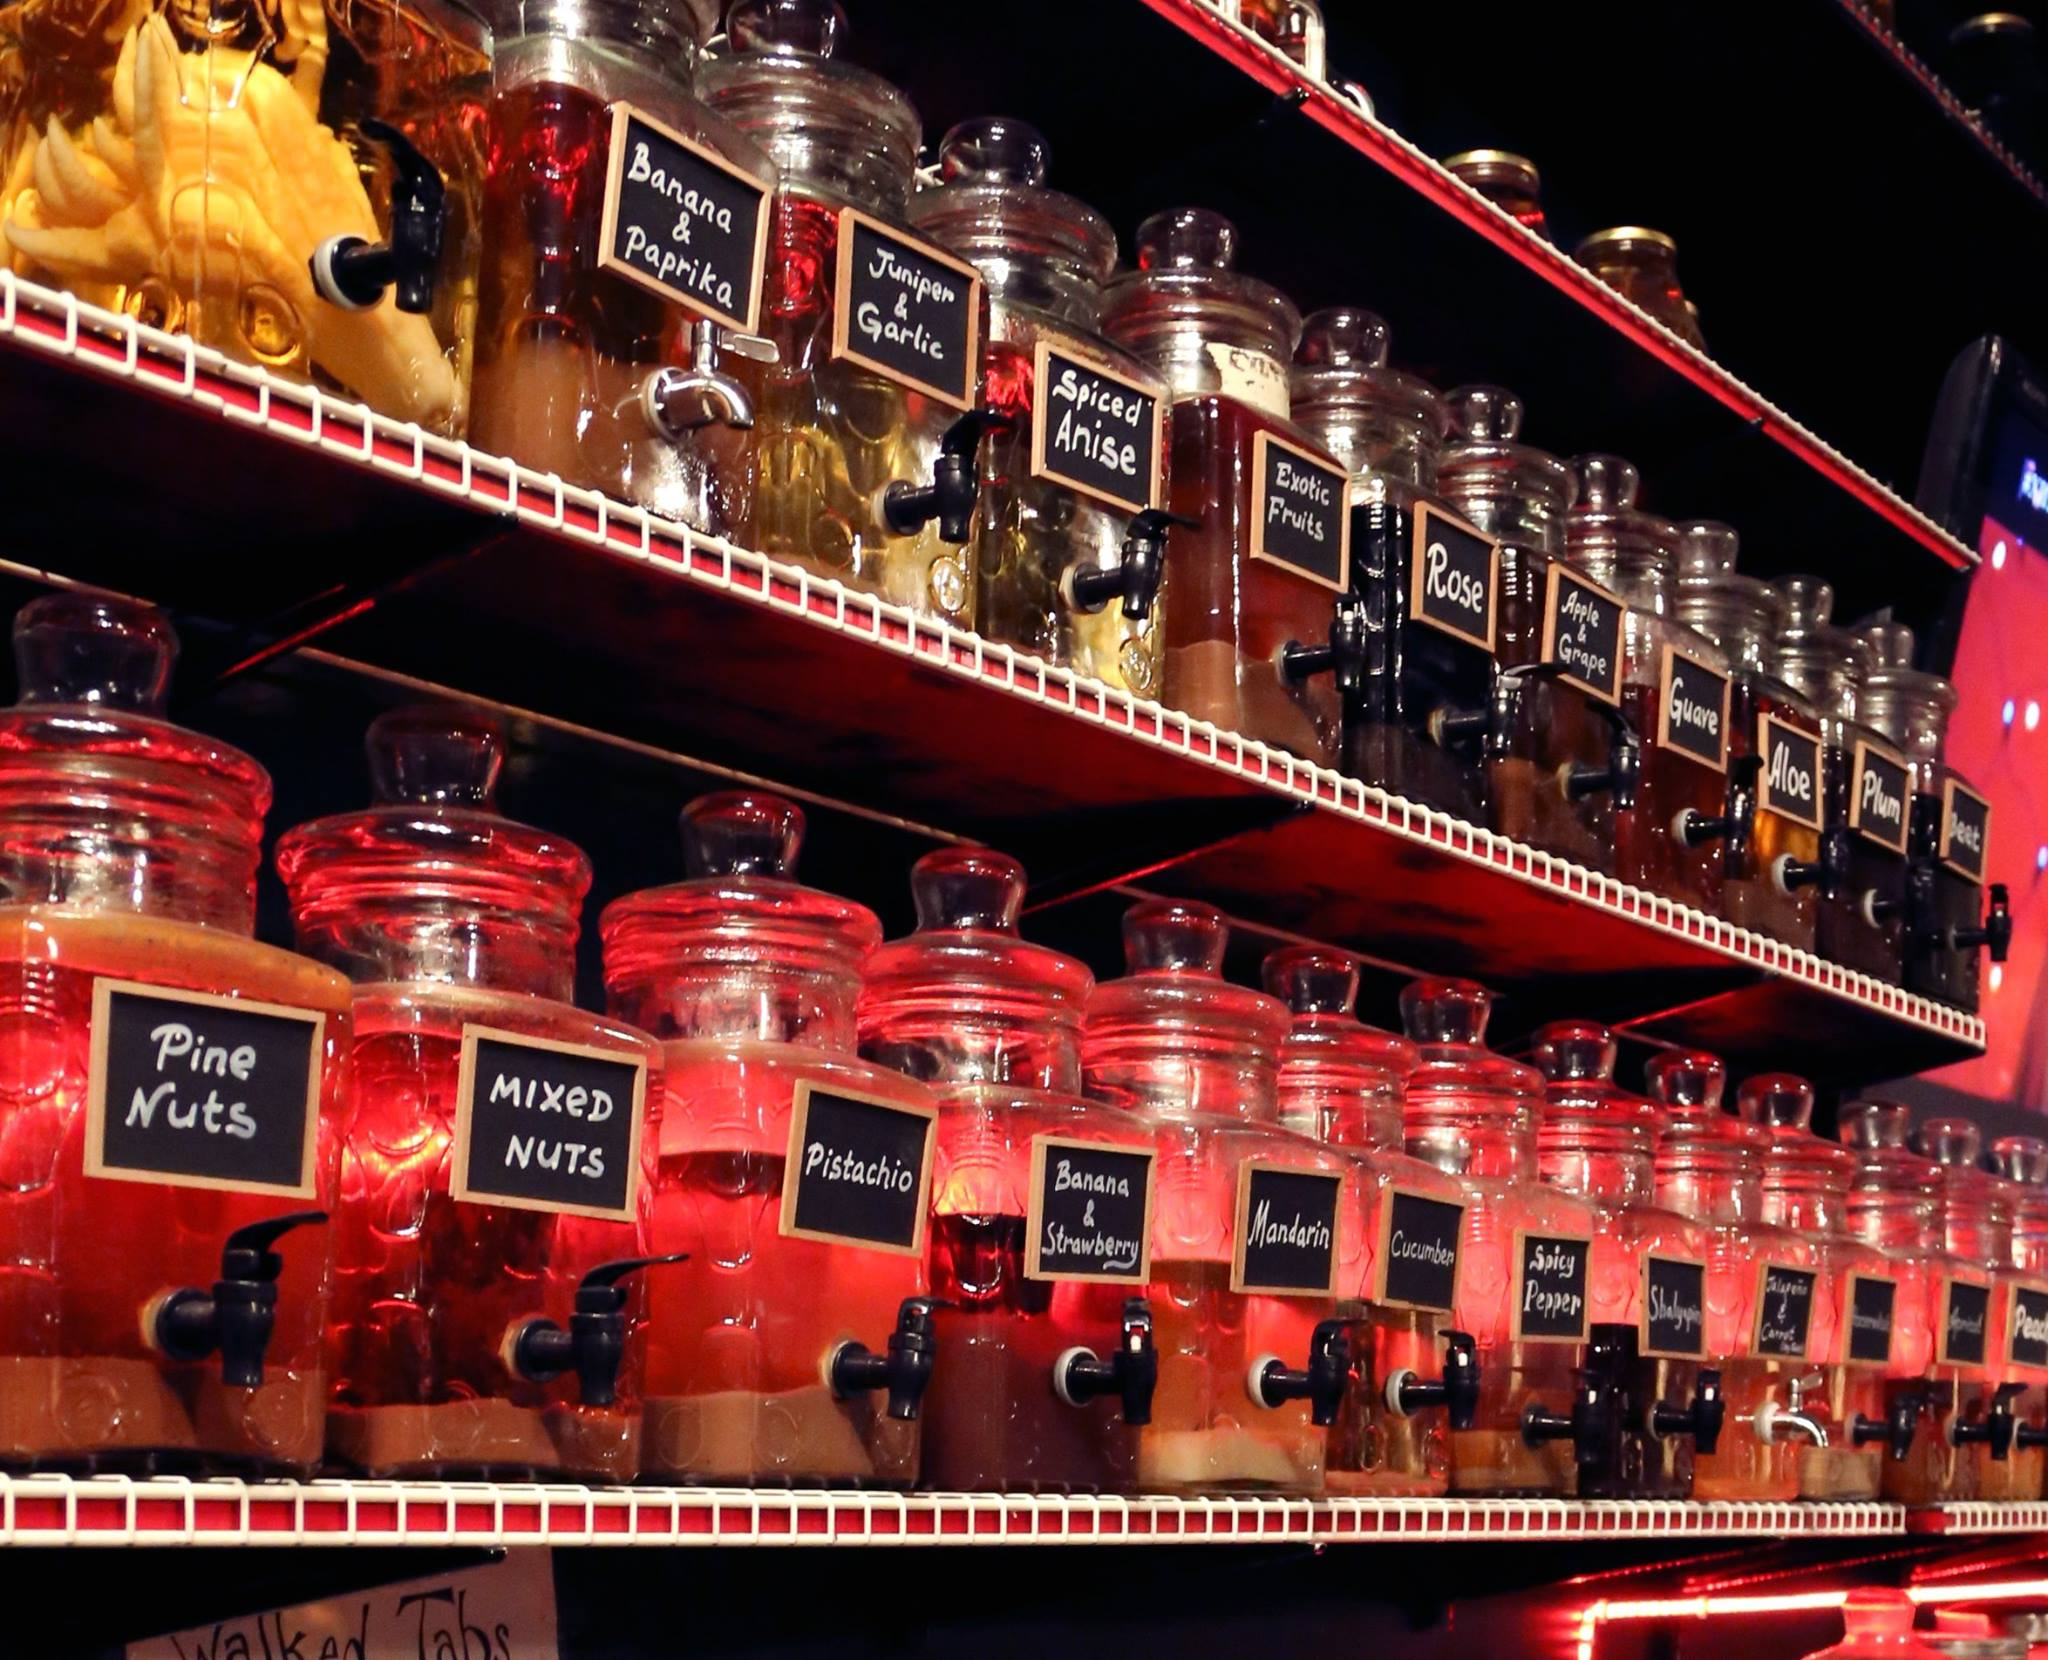 The wall of infused vodkas in jars at The Russian House in Austin